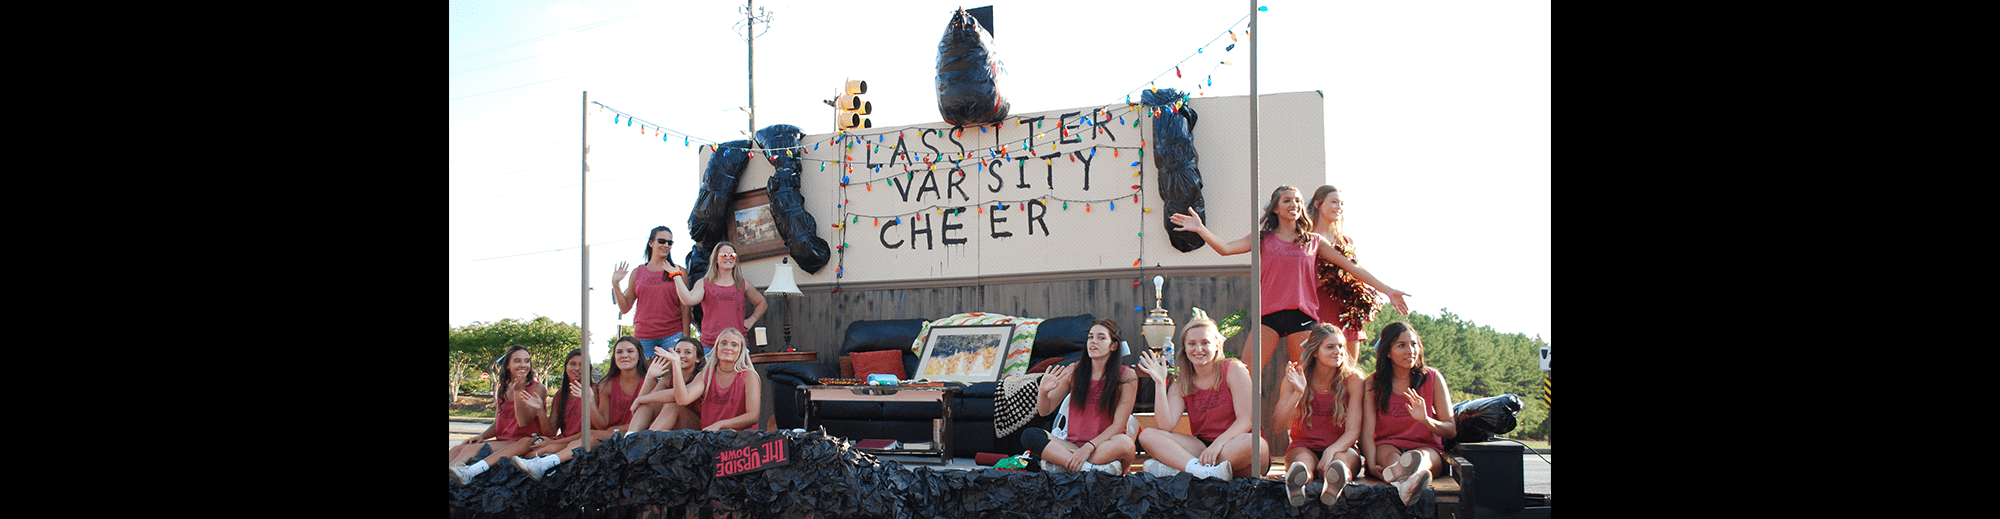 Lassiter Varsity Cheerleaders pose on their Stranger Things float outside